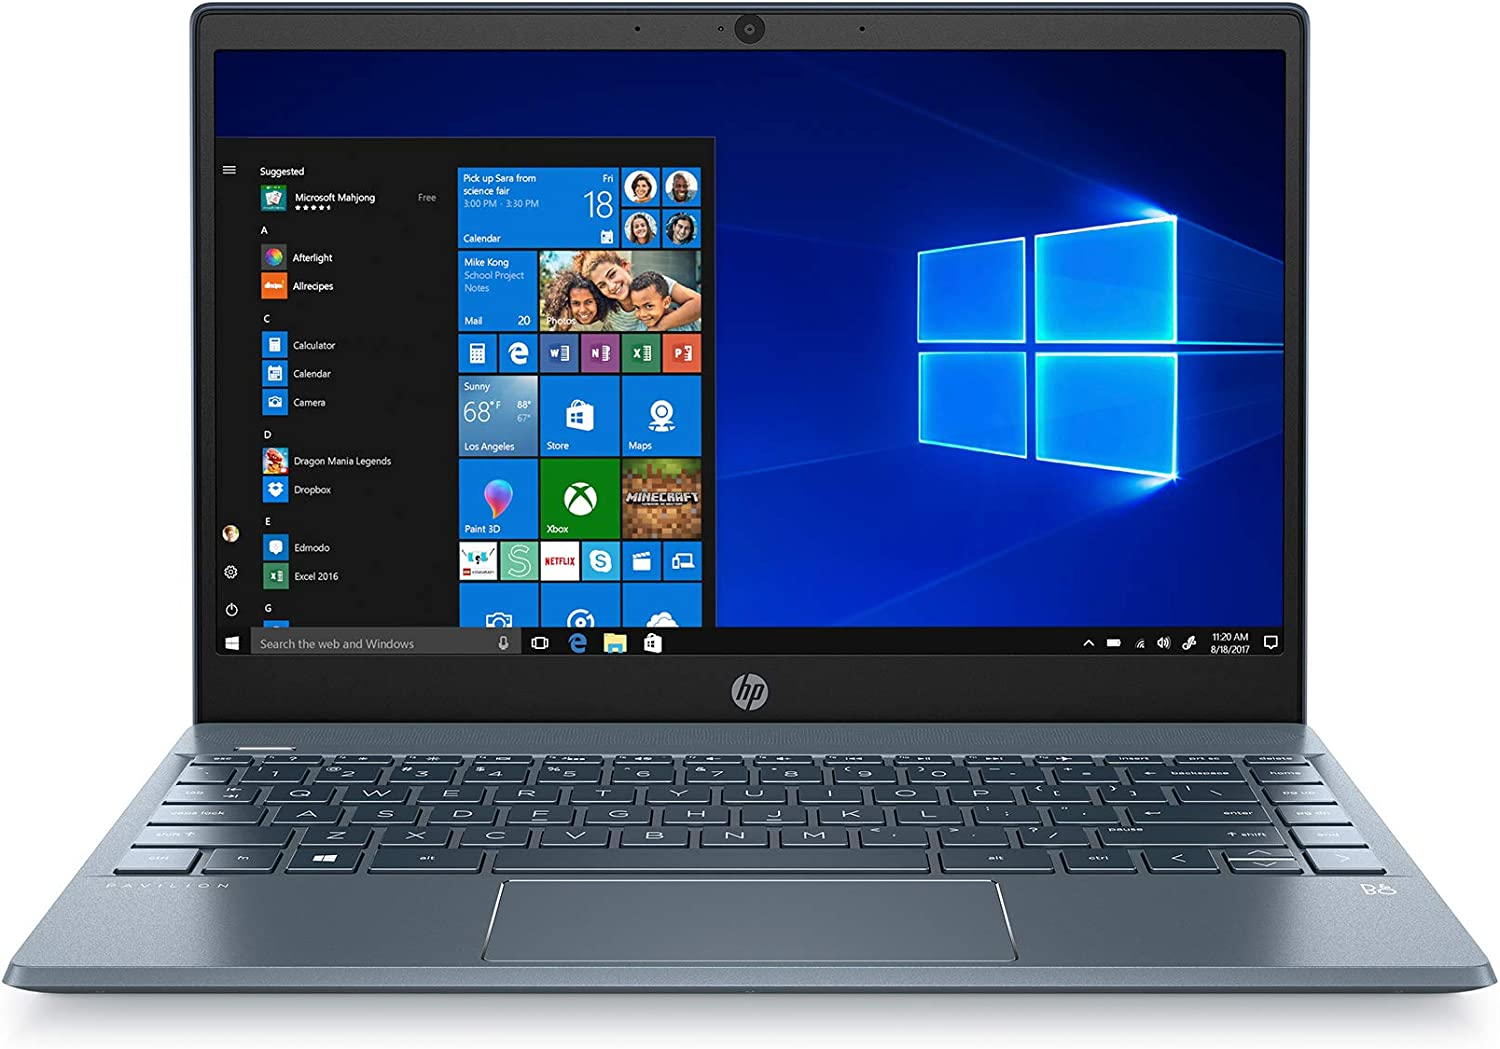 HP Pavilion 13-inch Light and Thin Laptop Intel Core i3-8145U Processor, 4 GB RAM, 128GB SSD, WiFi, Bluetooth, HDMI, Fingerprint Reader, Backlit Keyboard, Wins 10 S (Renewed)